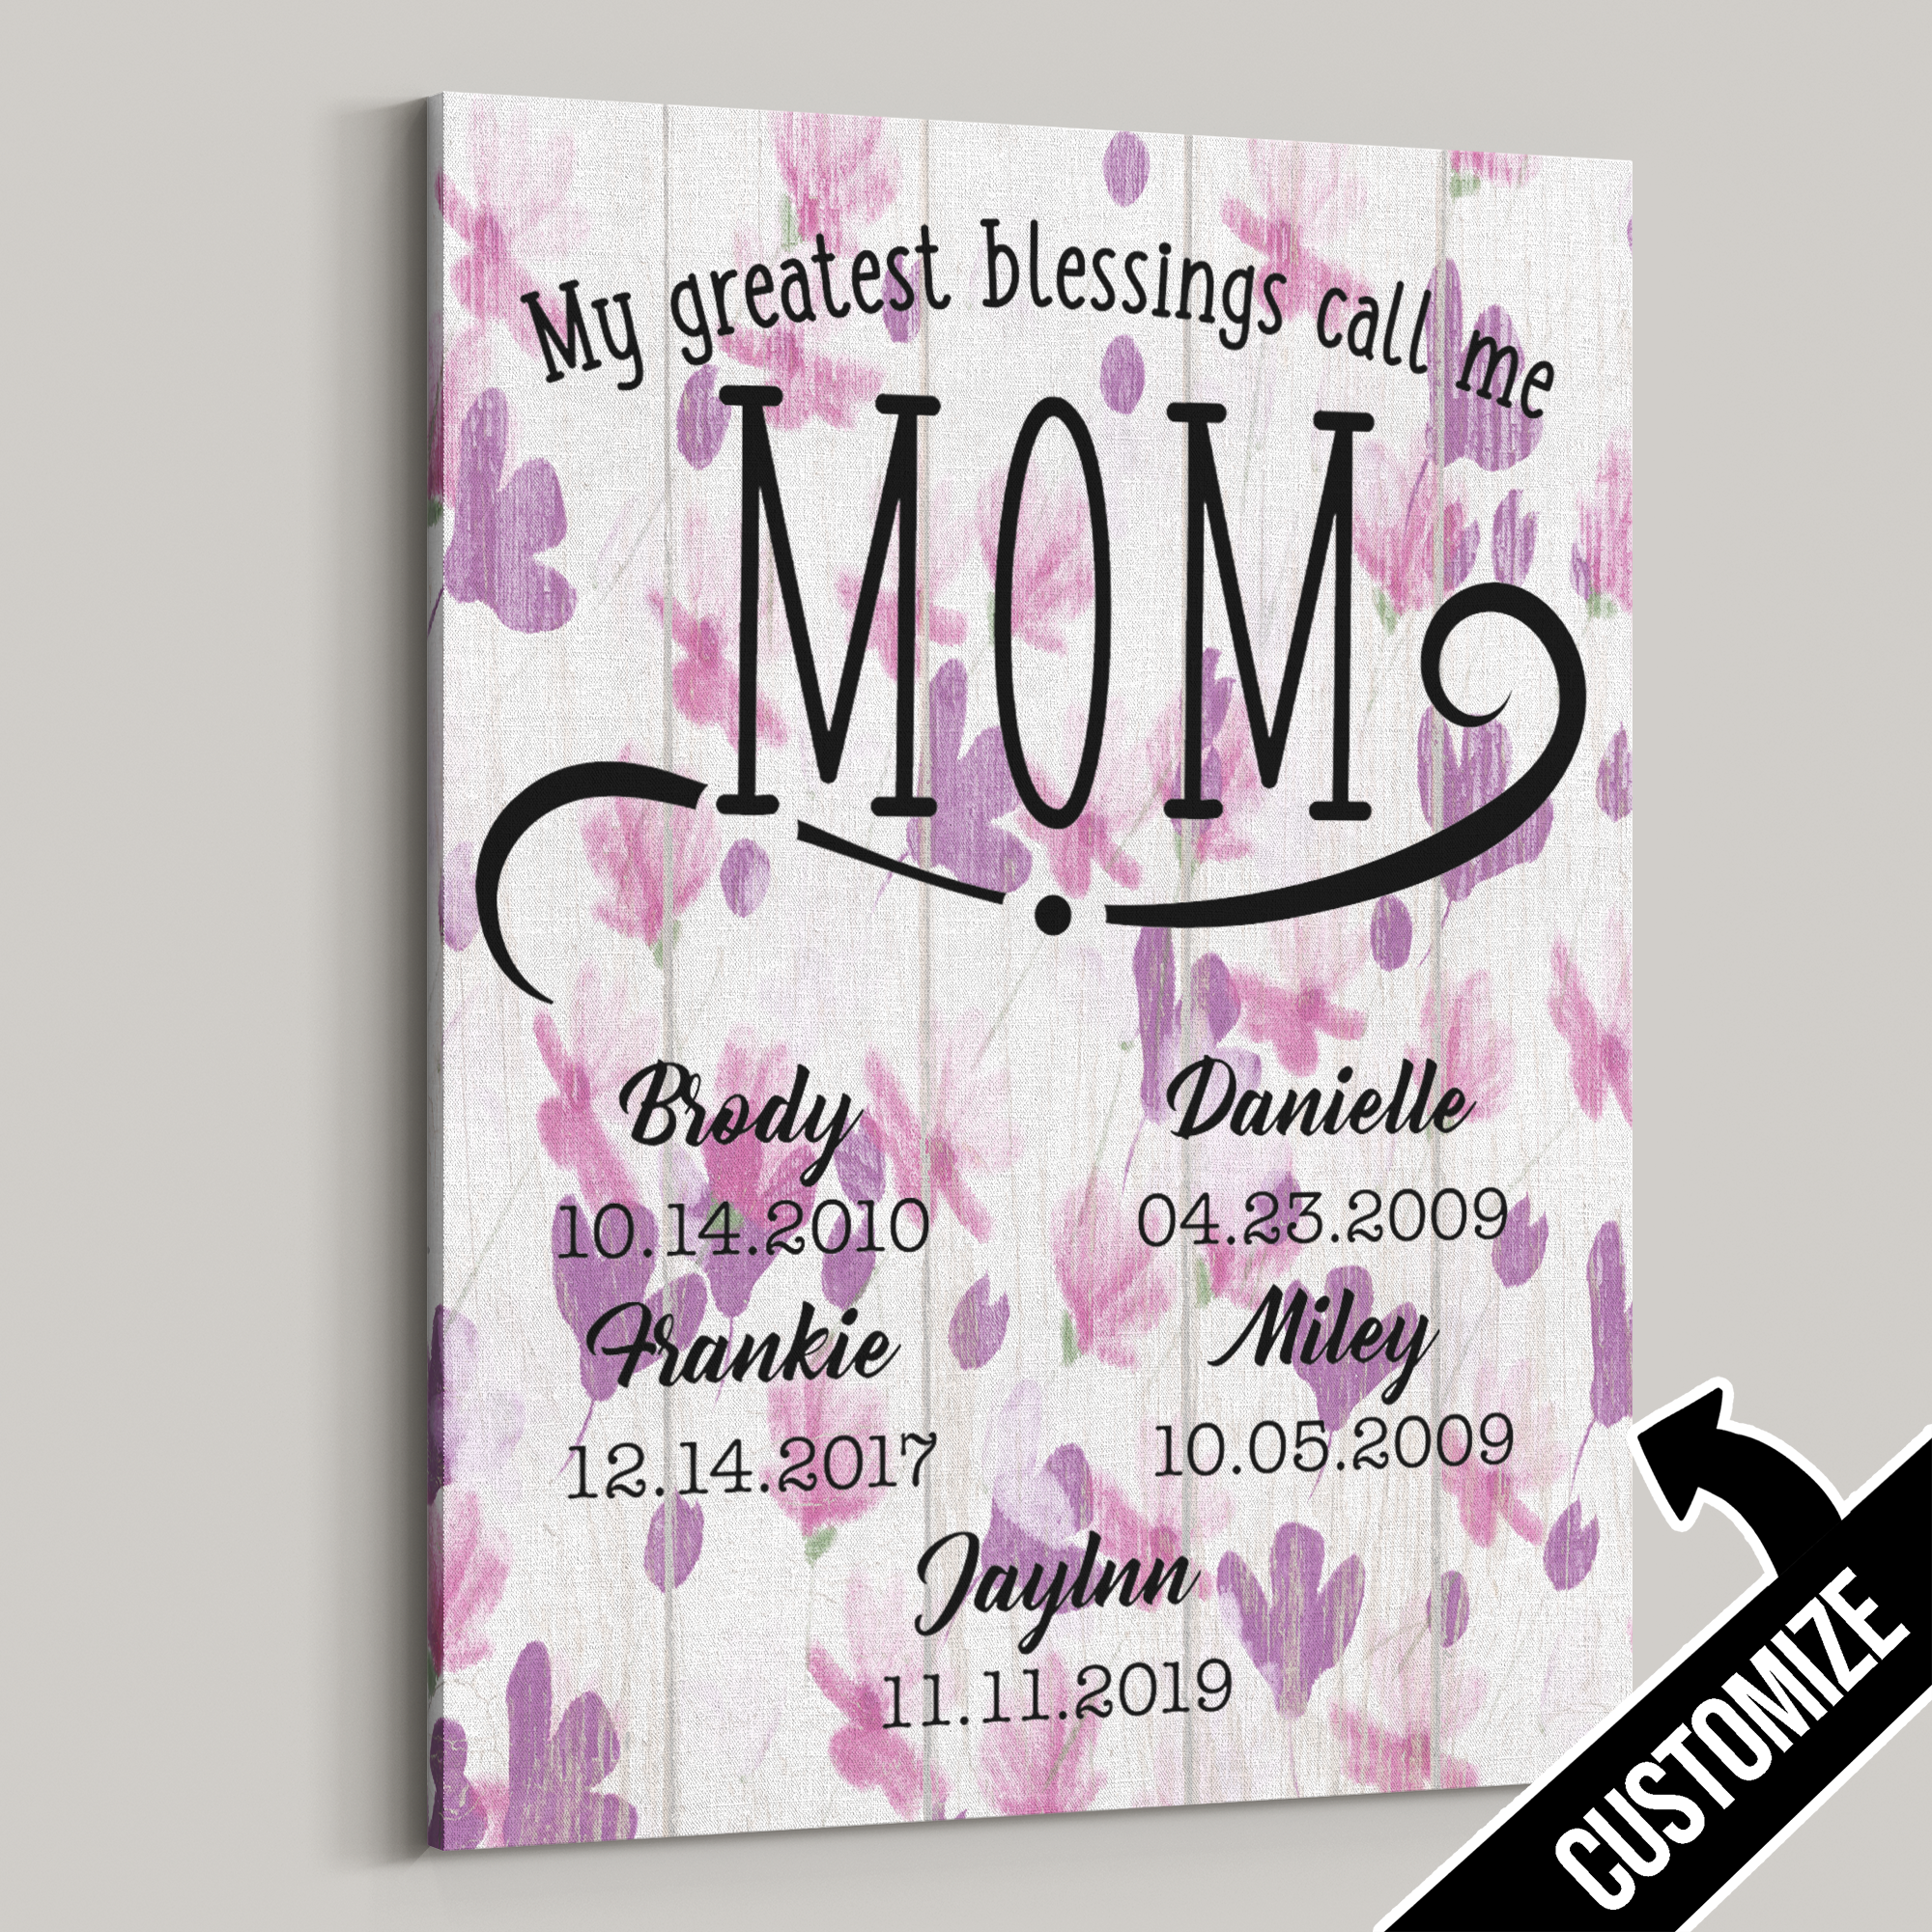 My Greatest Blessings Call Me Mom Violet Flowers Canvas - Patriot Republic